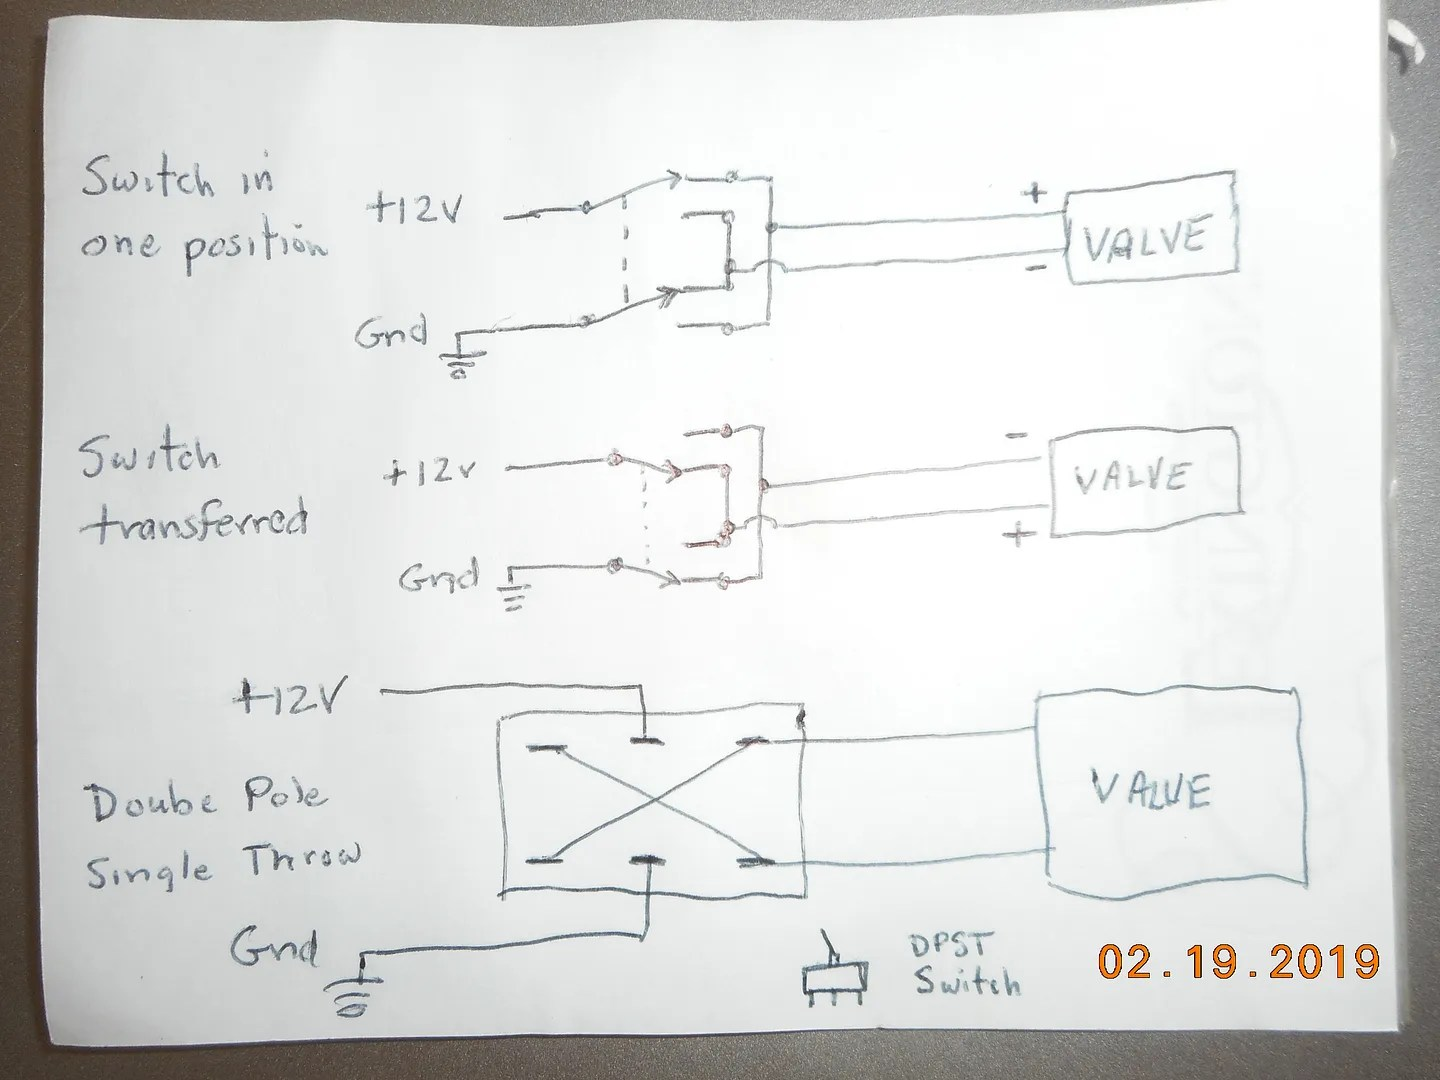 hight resolution of if you run a pair of wires from the dash to the selector valce you can just use a double pole single throw switch here is my crude drawing for wiring a